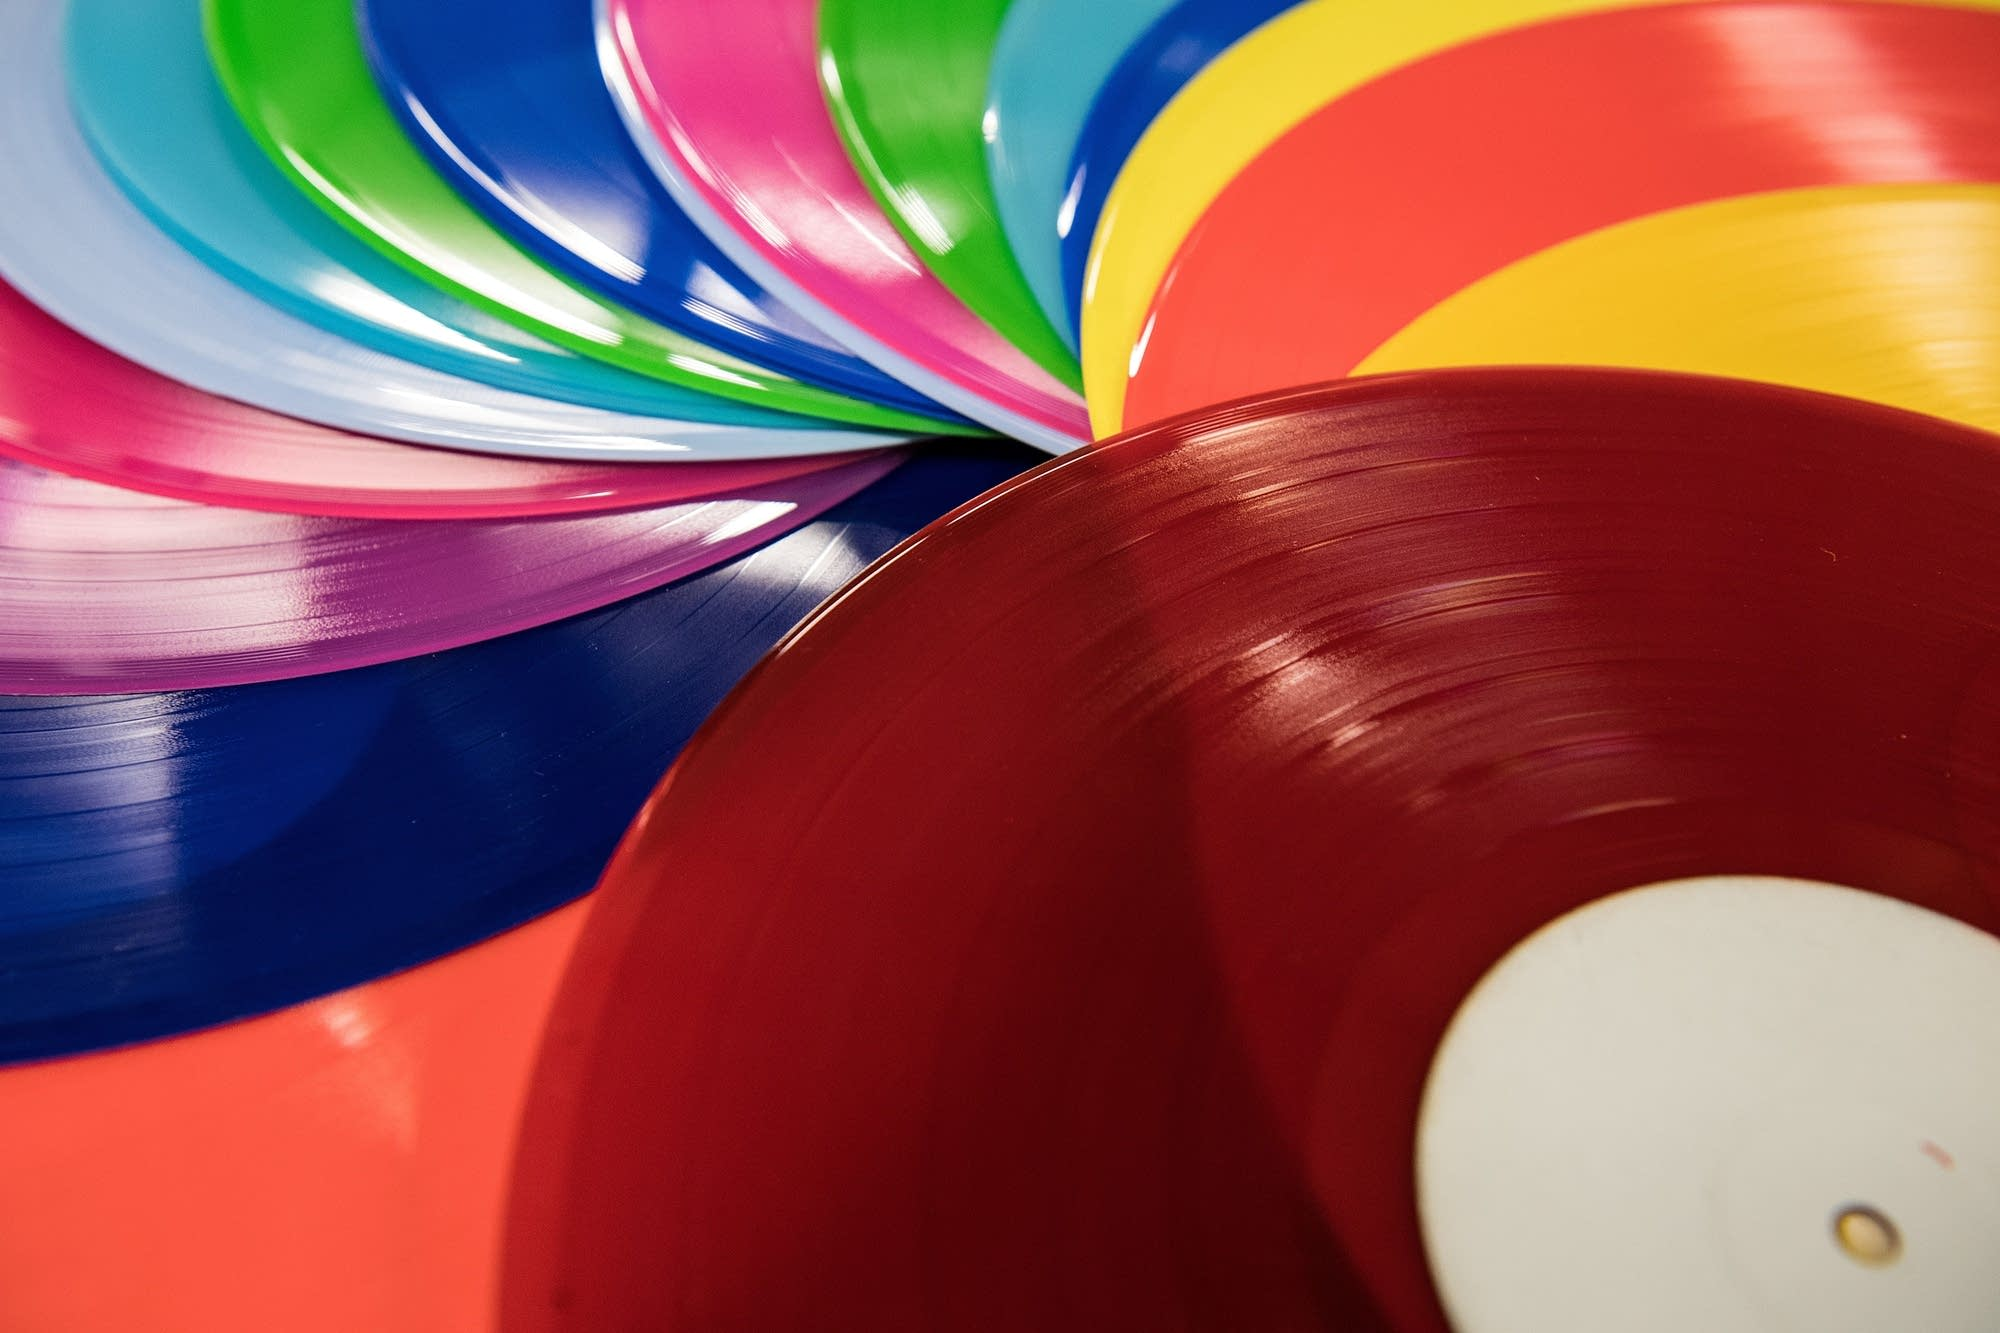 Colored vinyl at a pressing plant in England, 2017.